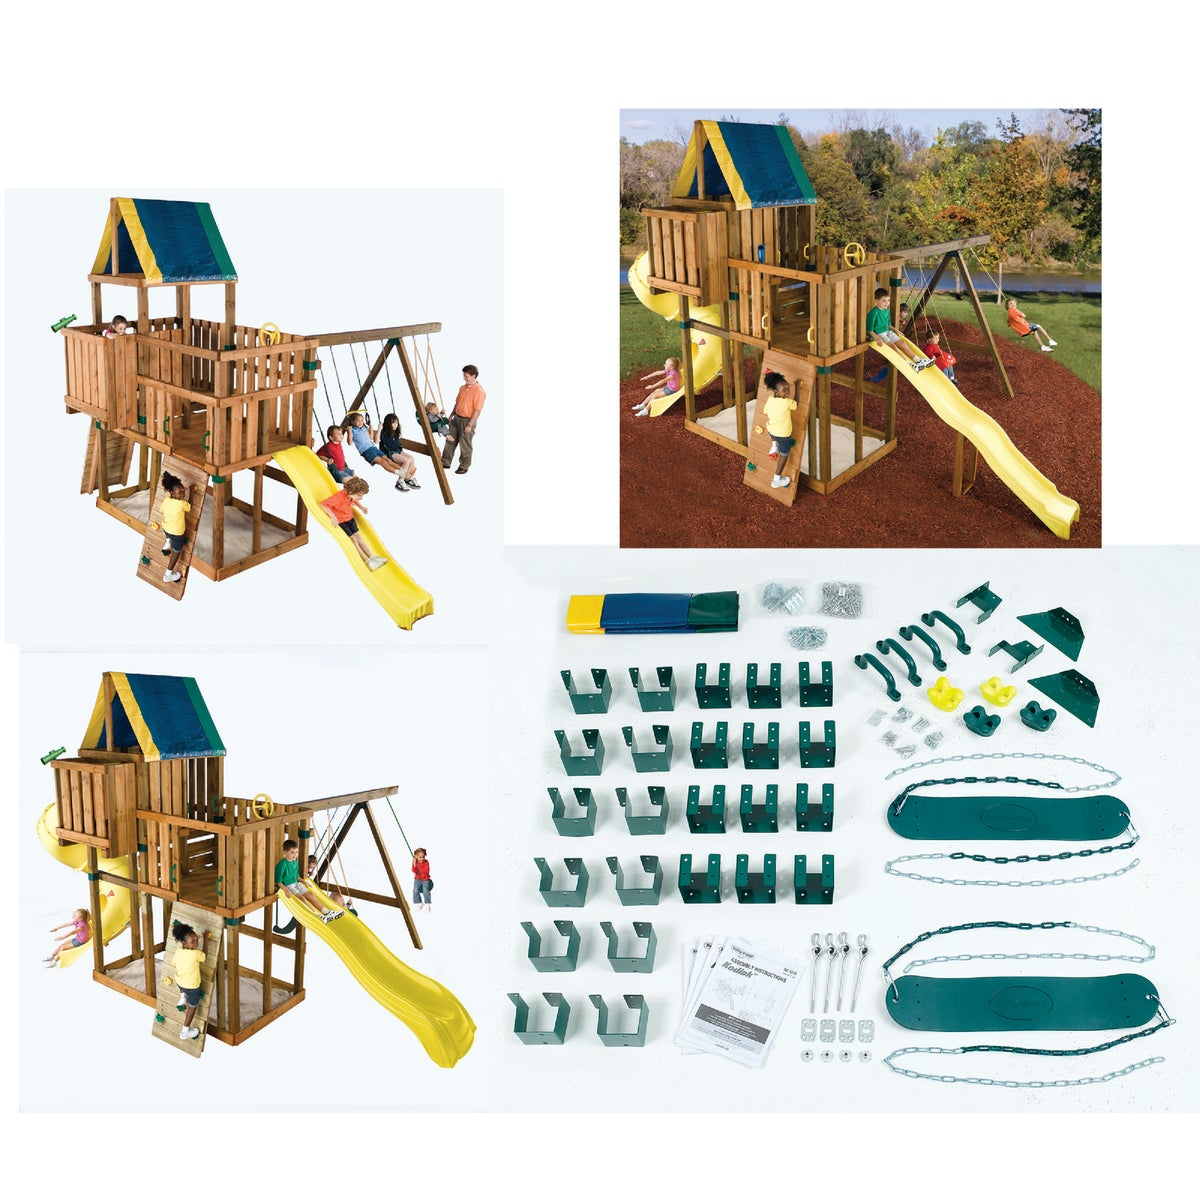 KODIAK PLAYGROUND KIT - NE5010 by Swing N Slide Corp